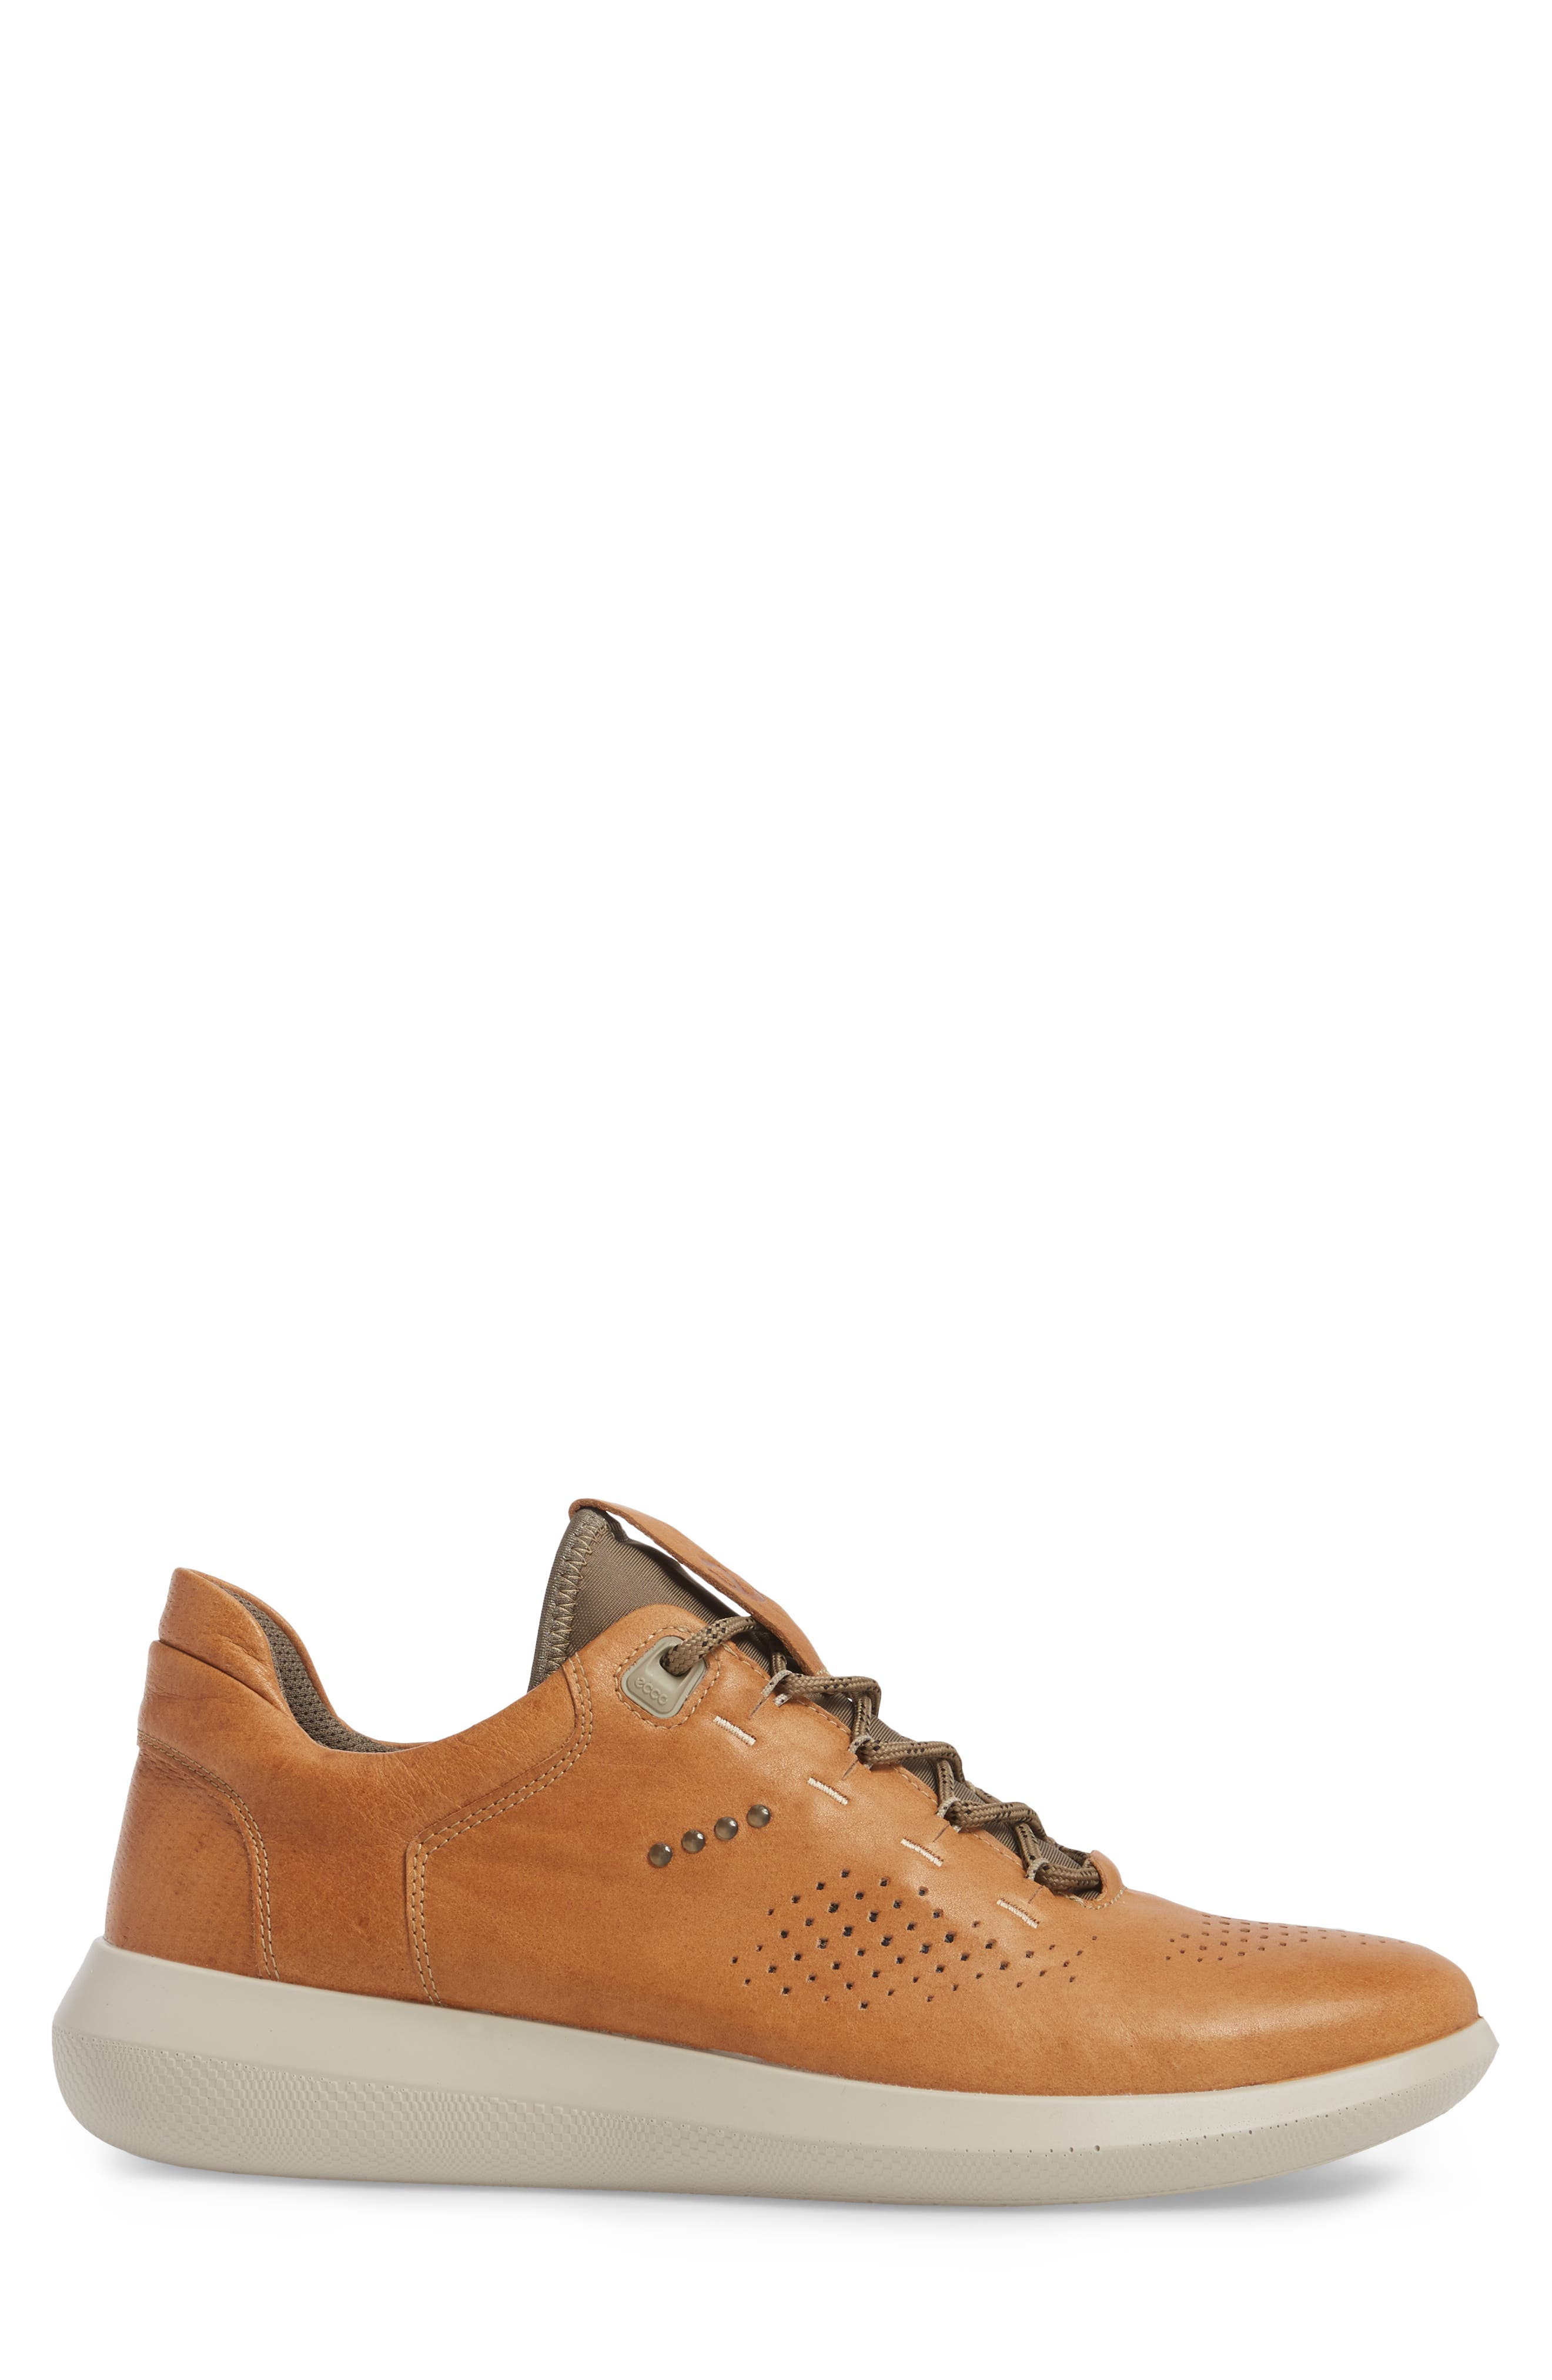 Scinapse Sneaker,                             Alternate thumbnail 3, color,                             Brown Leather